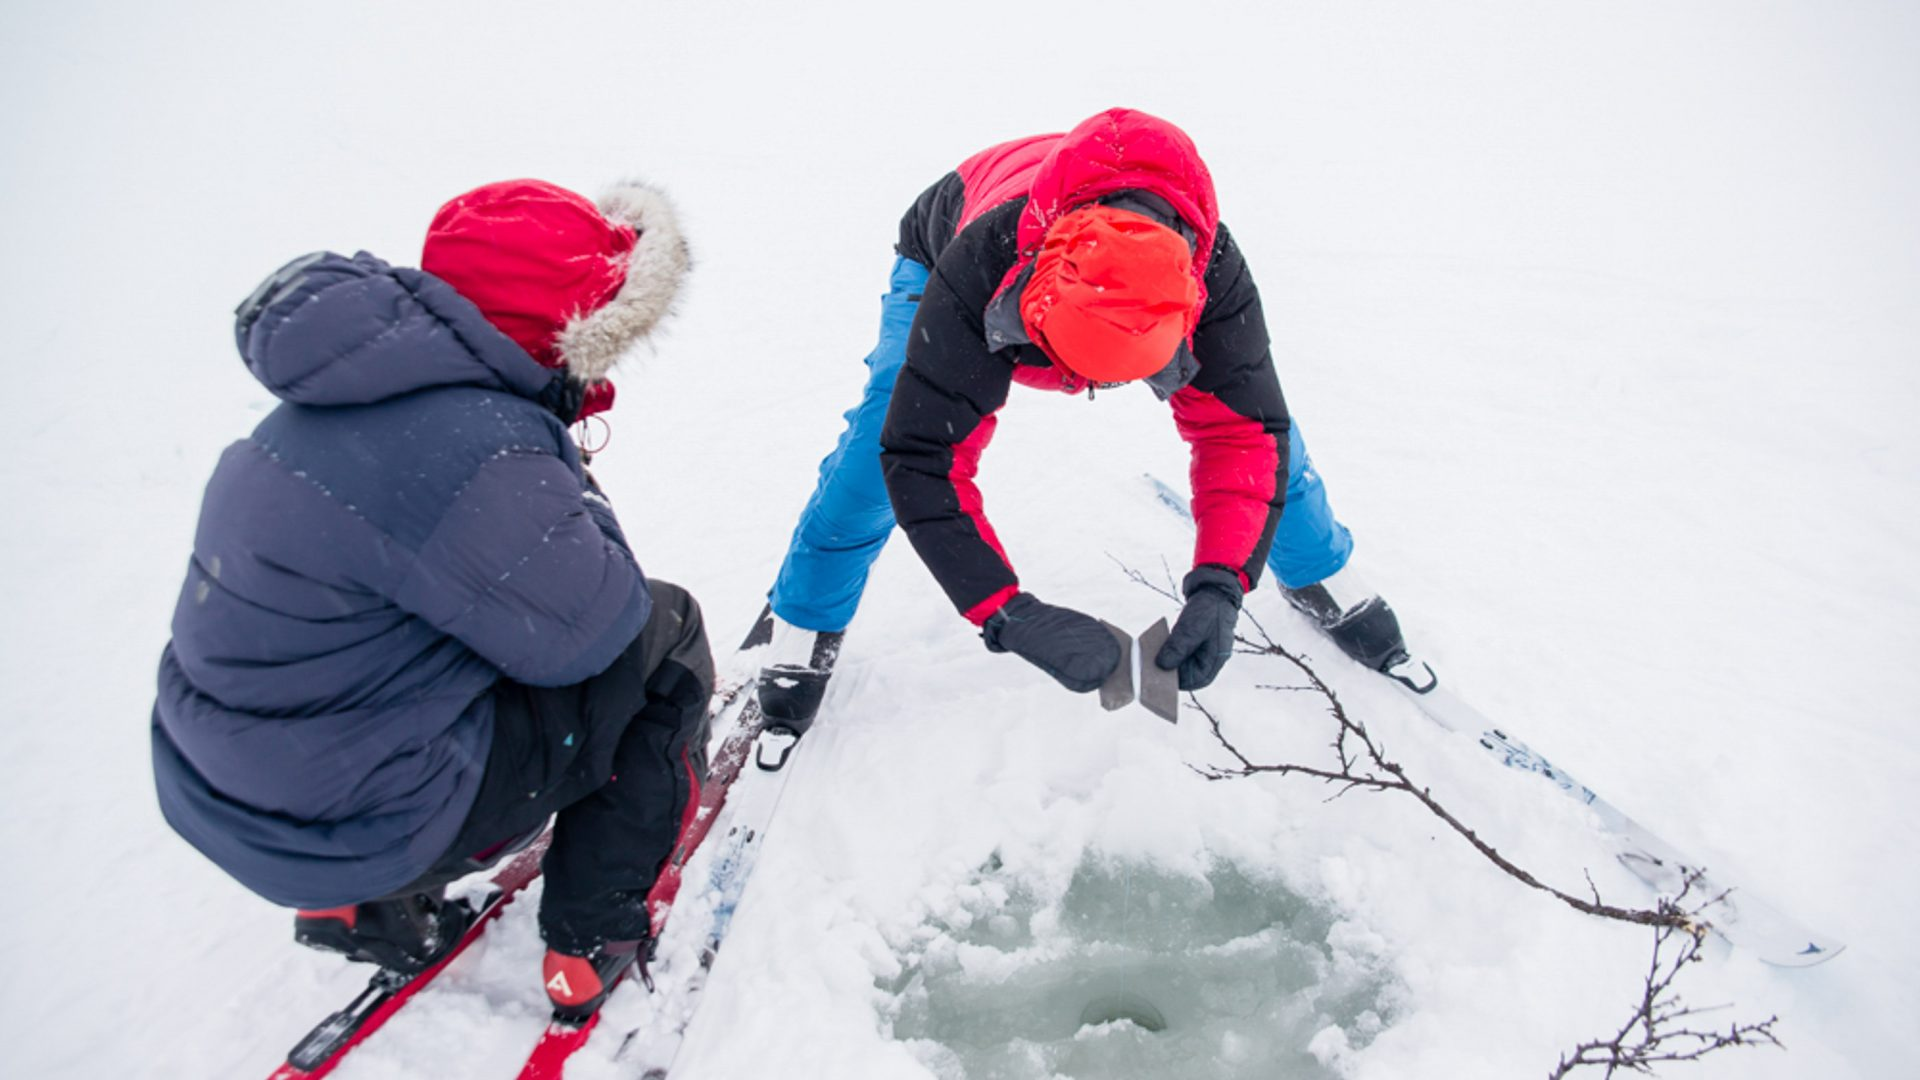 Two friends dig out water from a hole in the snow.